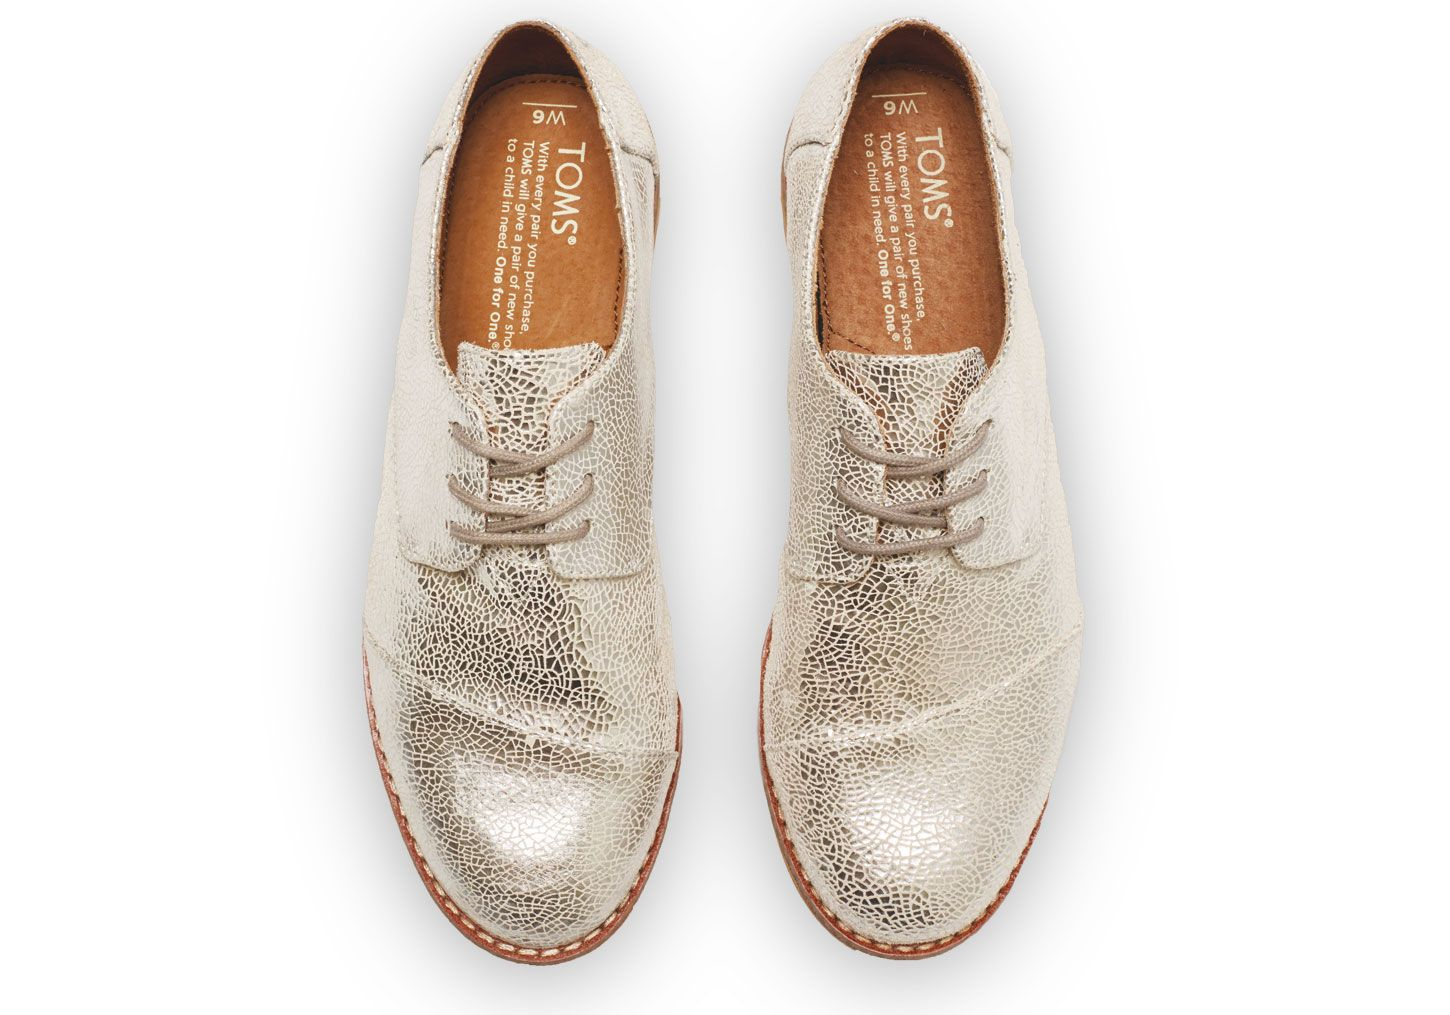 TOMS Silver Crackled Brogues for women. A little sparkle in every step!